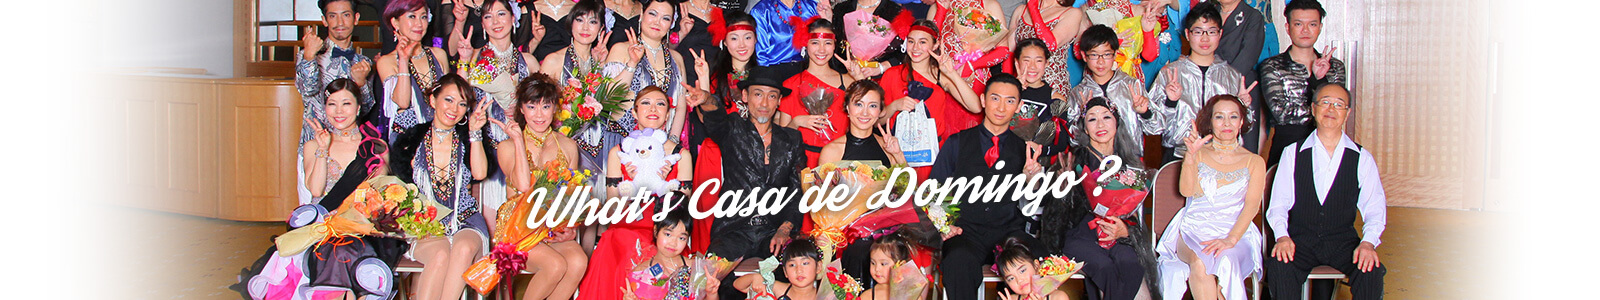 What's Casa de Domingo ?